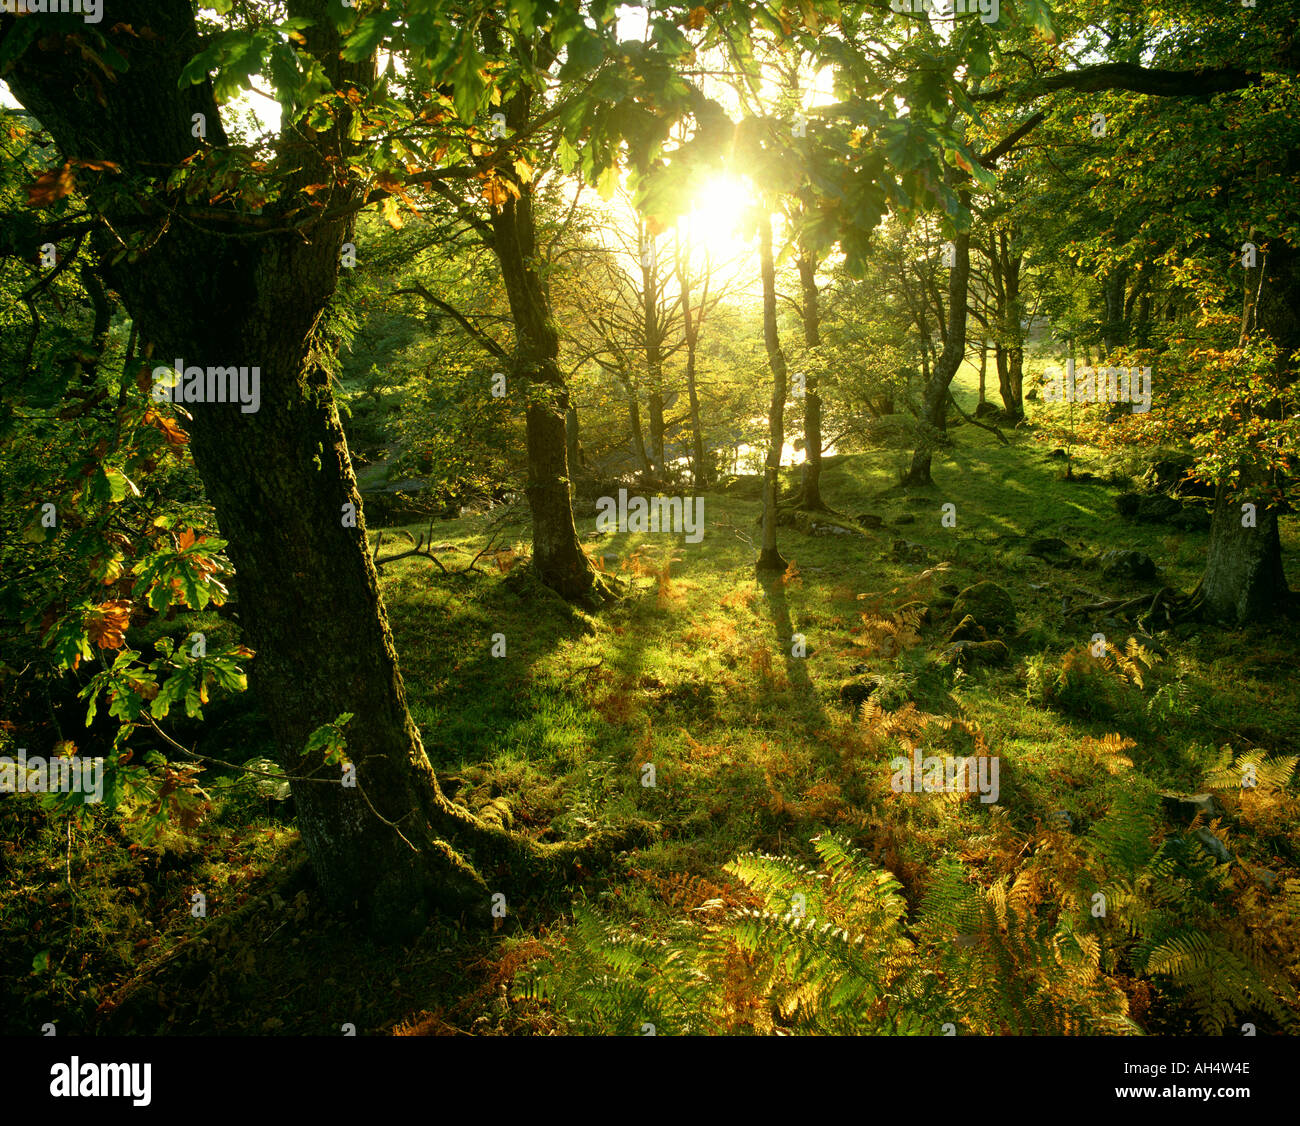 GB - WALES: Snowdonia National Forest Stock Photo